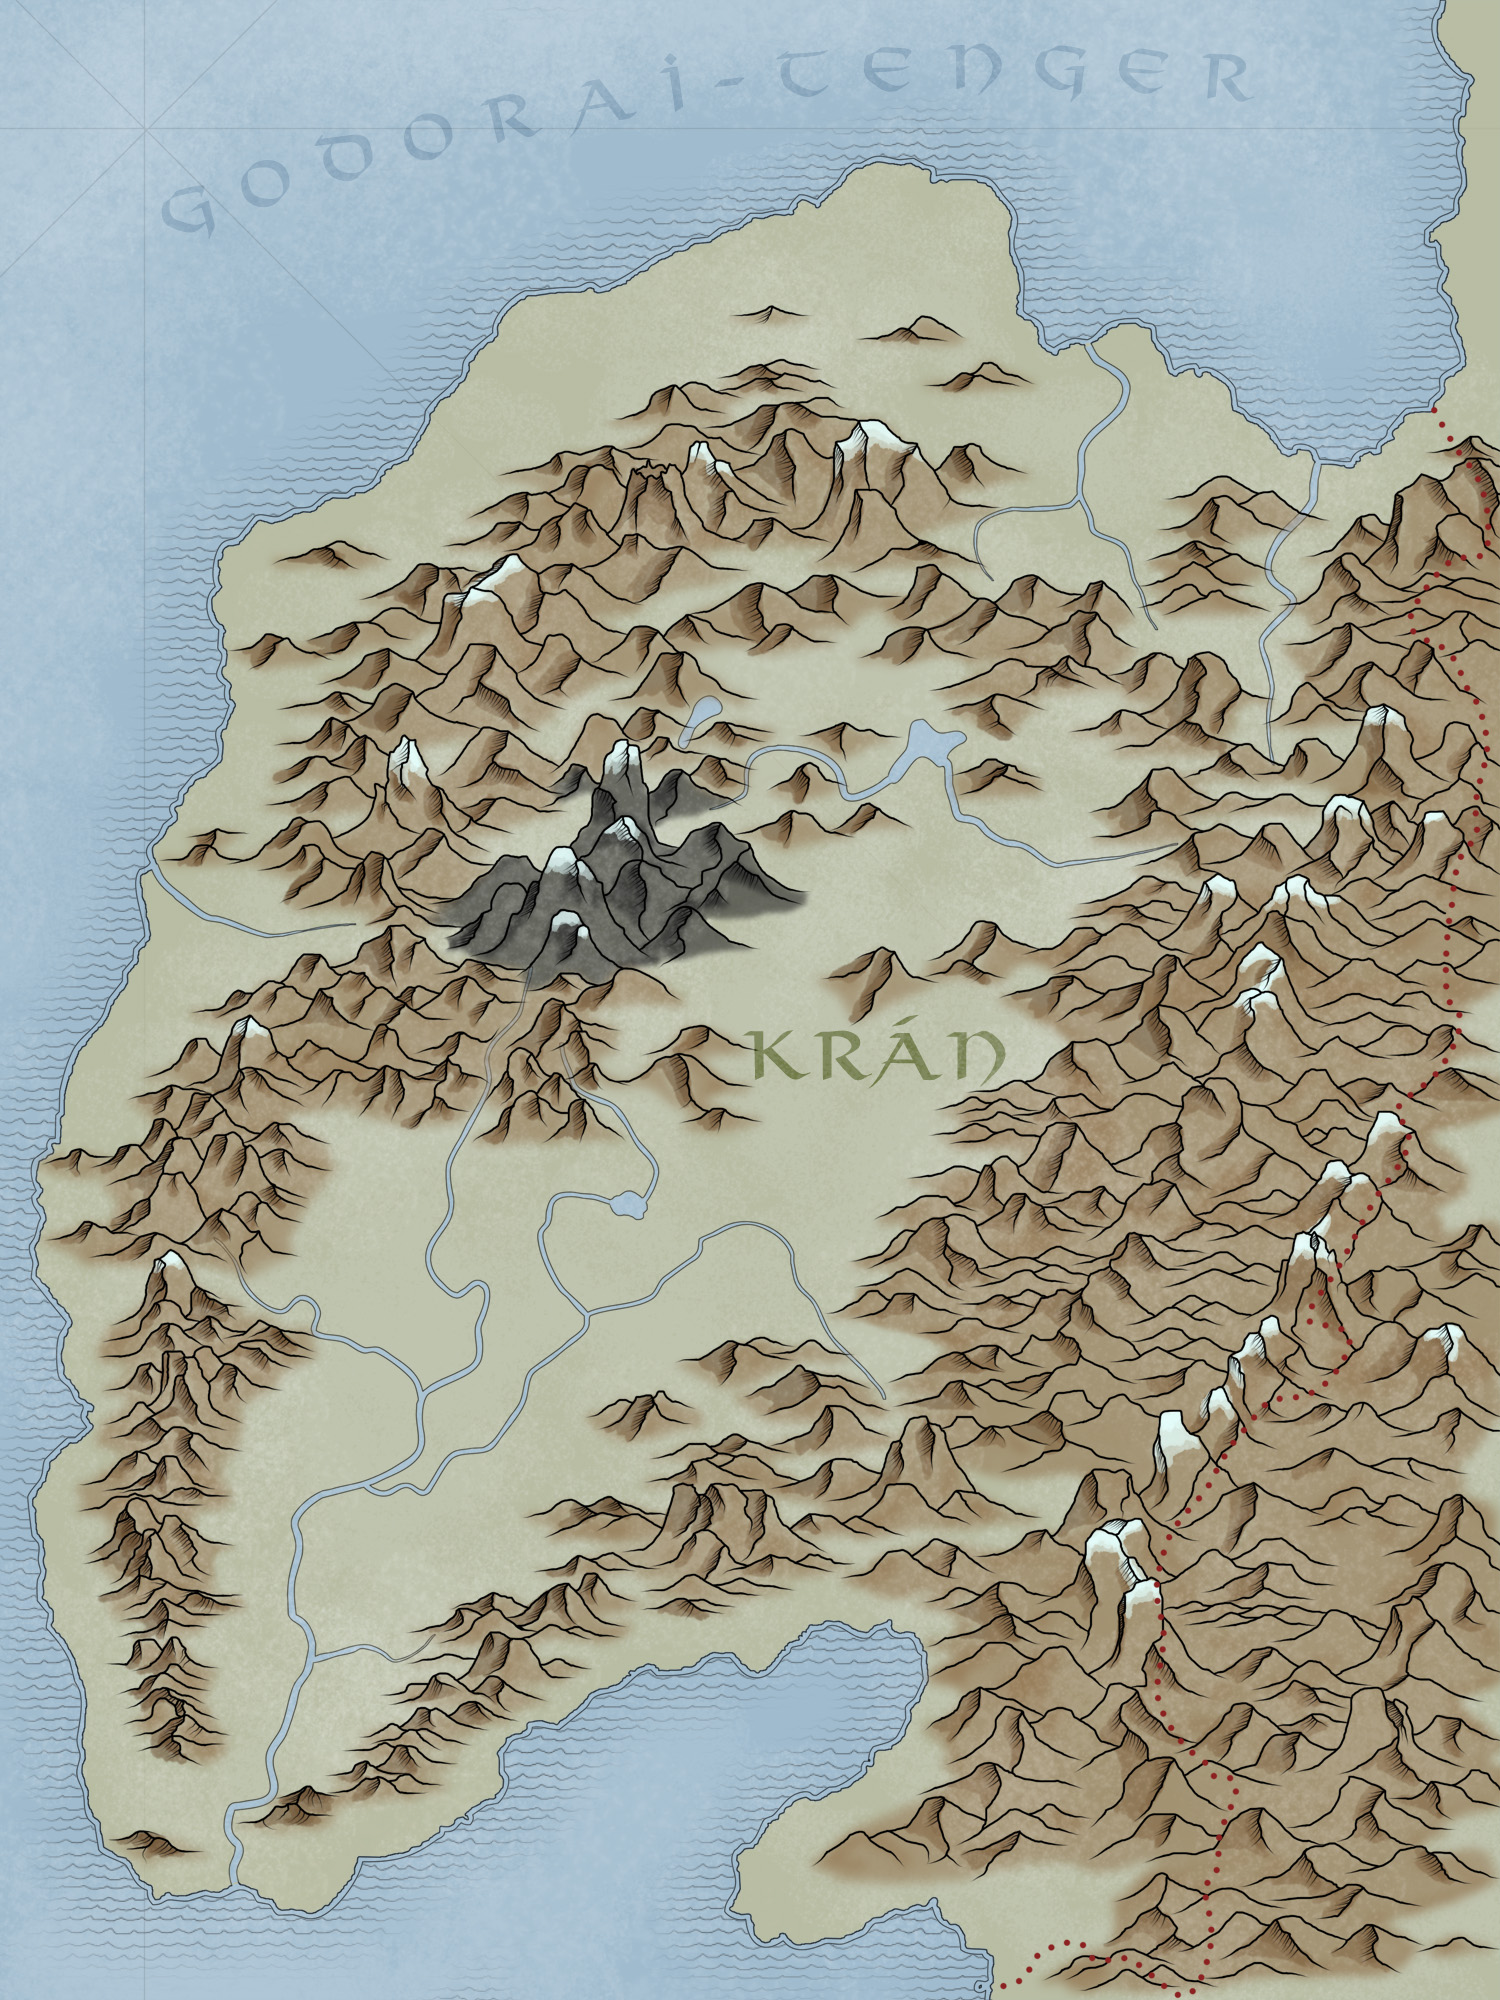 Ynev - Kran v3.0 (Country Map)